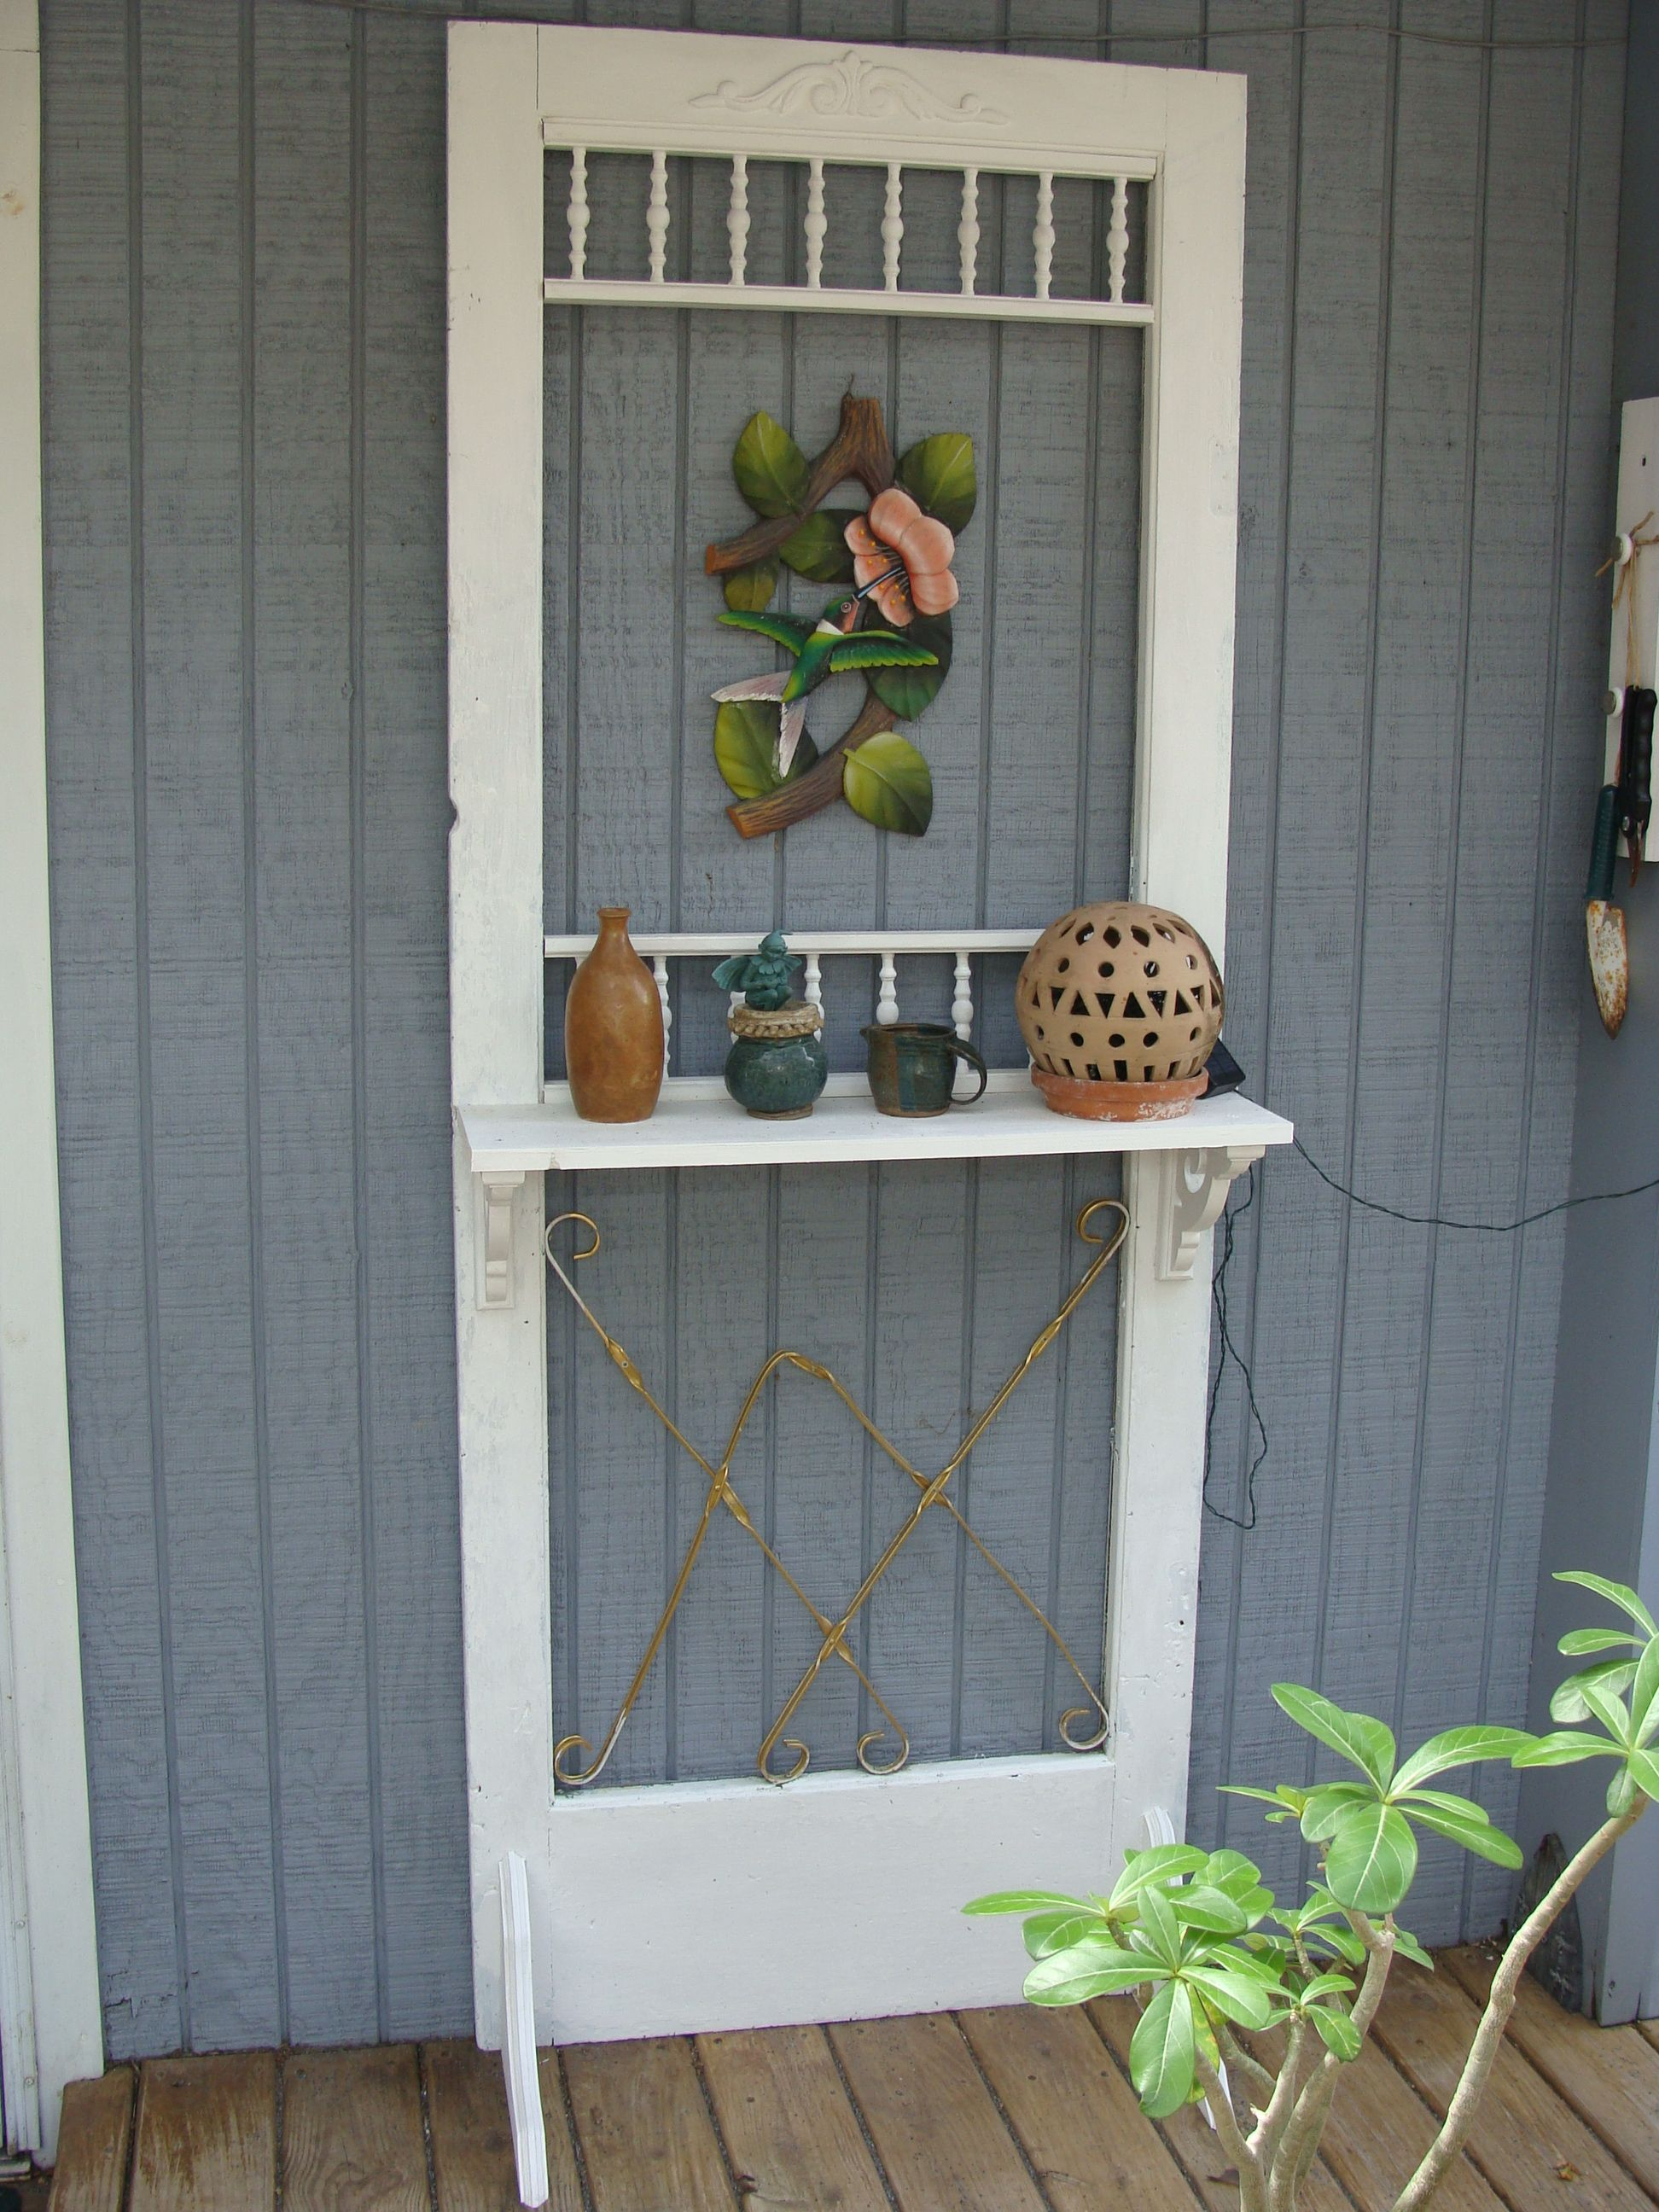 Old Screen Door Ideas.Old Screen Door With Shelf In 2019 Vintage Screen Doors